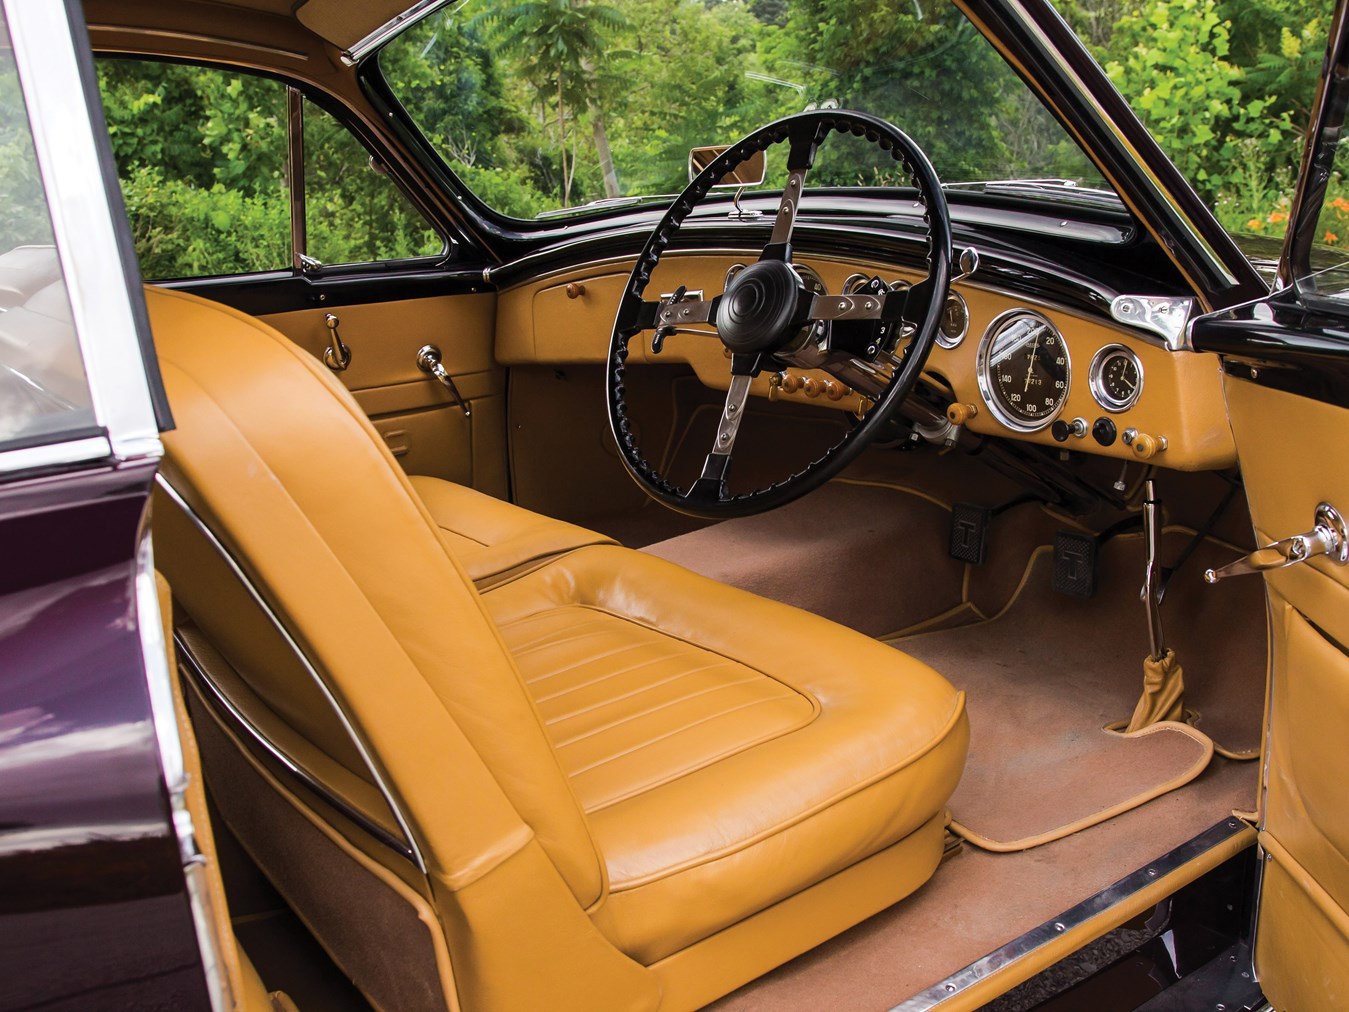 The luxurious interior of the Talbot-Lago T26 GSL is one for a knowledgeable connoisseur of fine sports cars. Note the Wilson pre-selector gear change on the steering column.